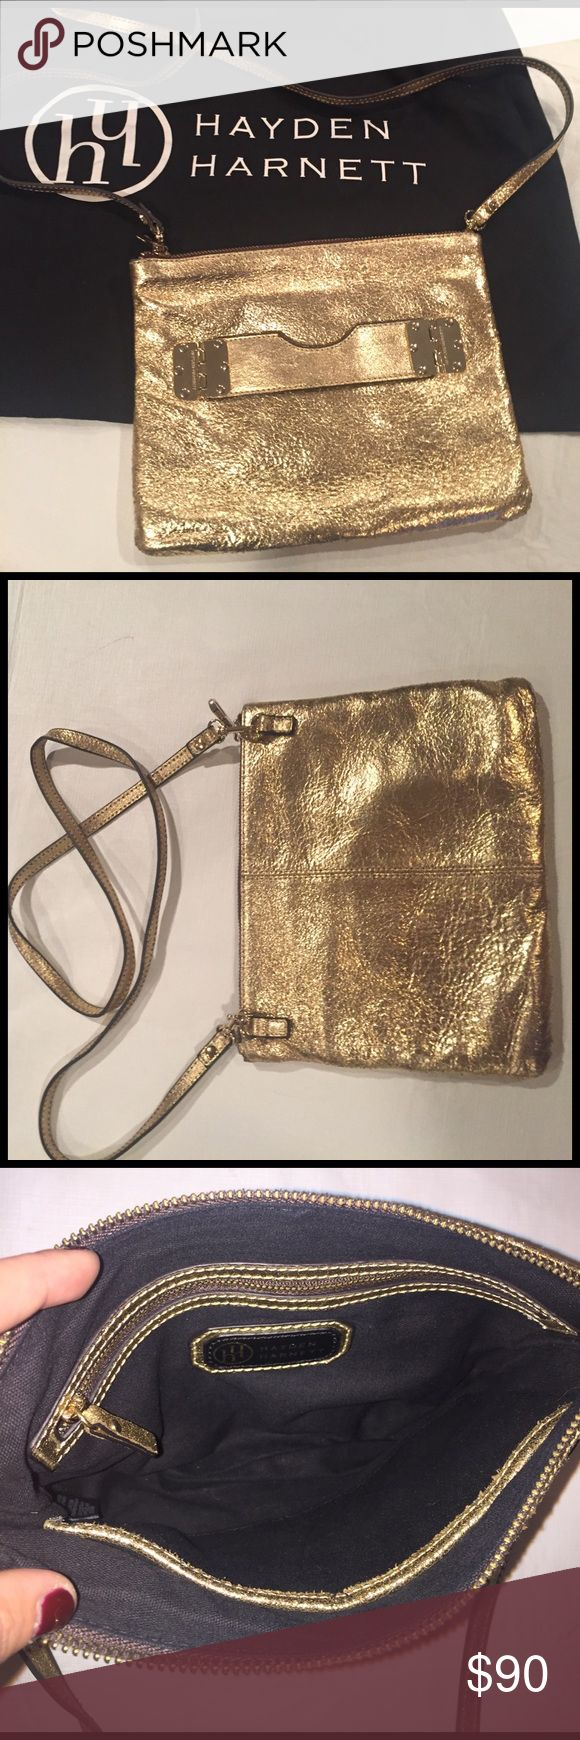 Hayden Harnett Gold Shimmer Crossbody/Clutch Hayden Harnett gold shimmer crossbody bag with zip closure. Removable strap to be worn as clutch with front buckled strap (not removable). Zippered pouch and 2 side pockets inside. Perfect condition, barely worn. Hayden Harnett Bags Crossbody Bags